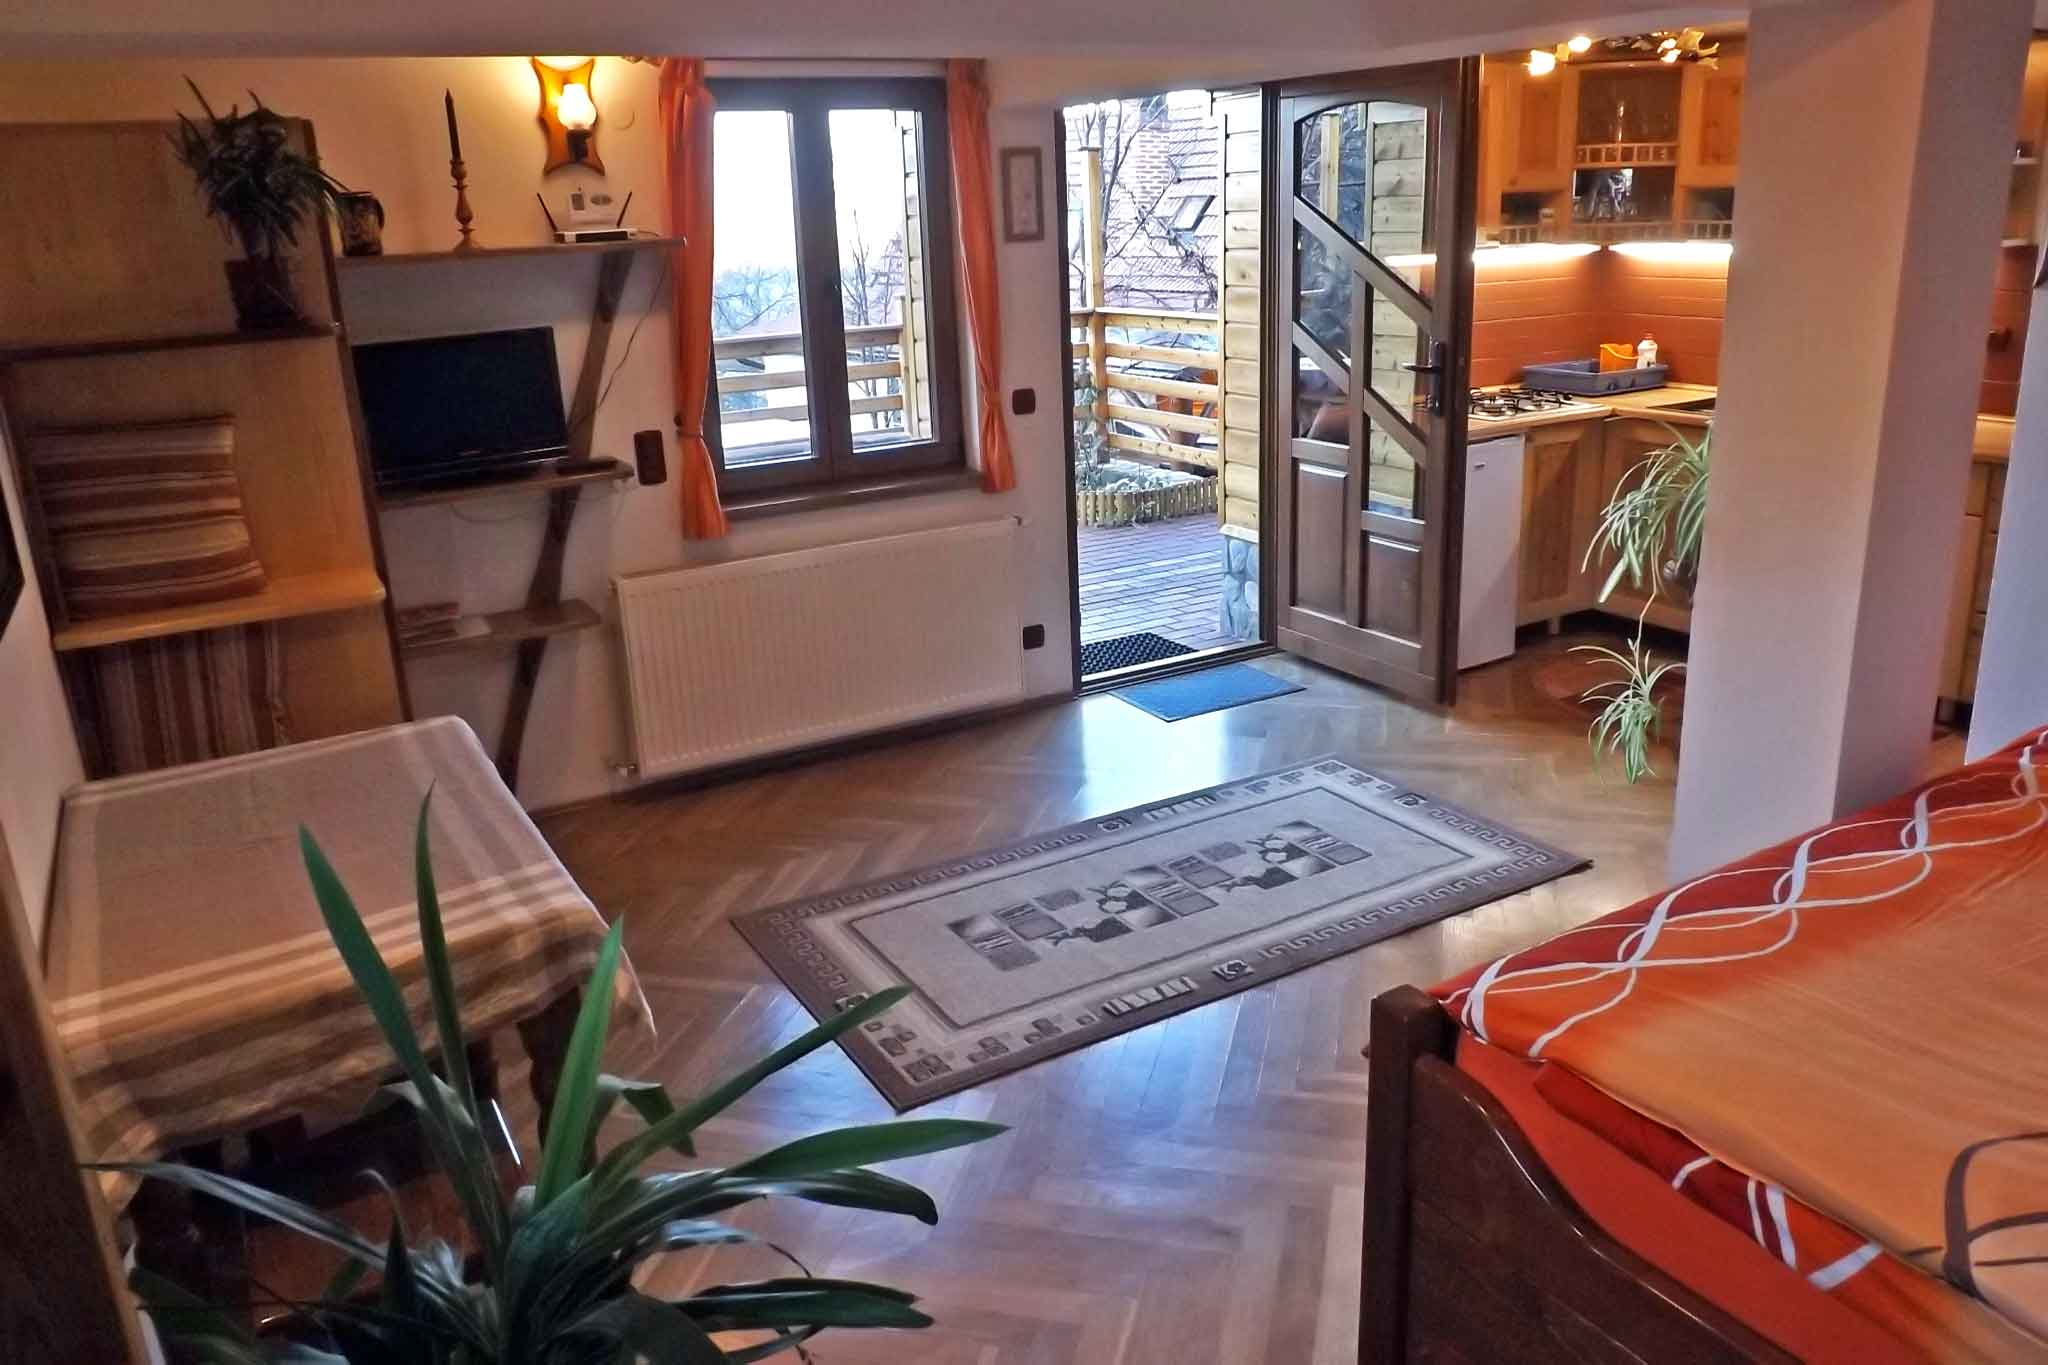 romania studios for rent for your couples holidays in transylvania